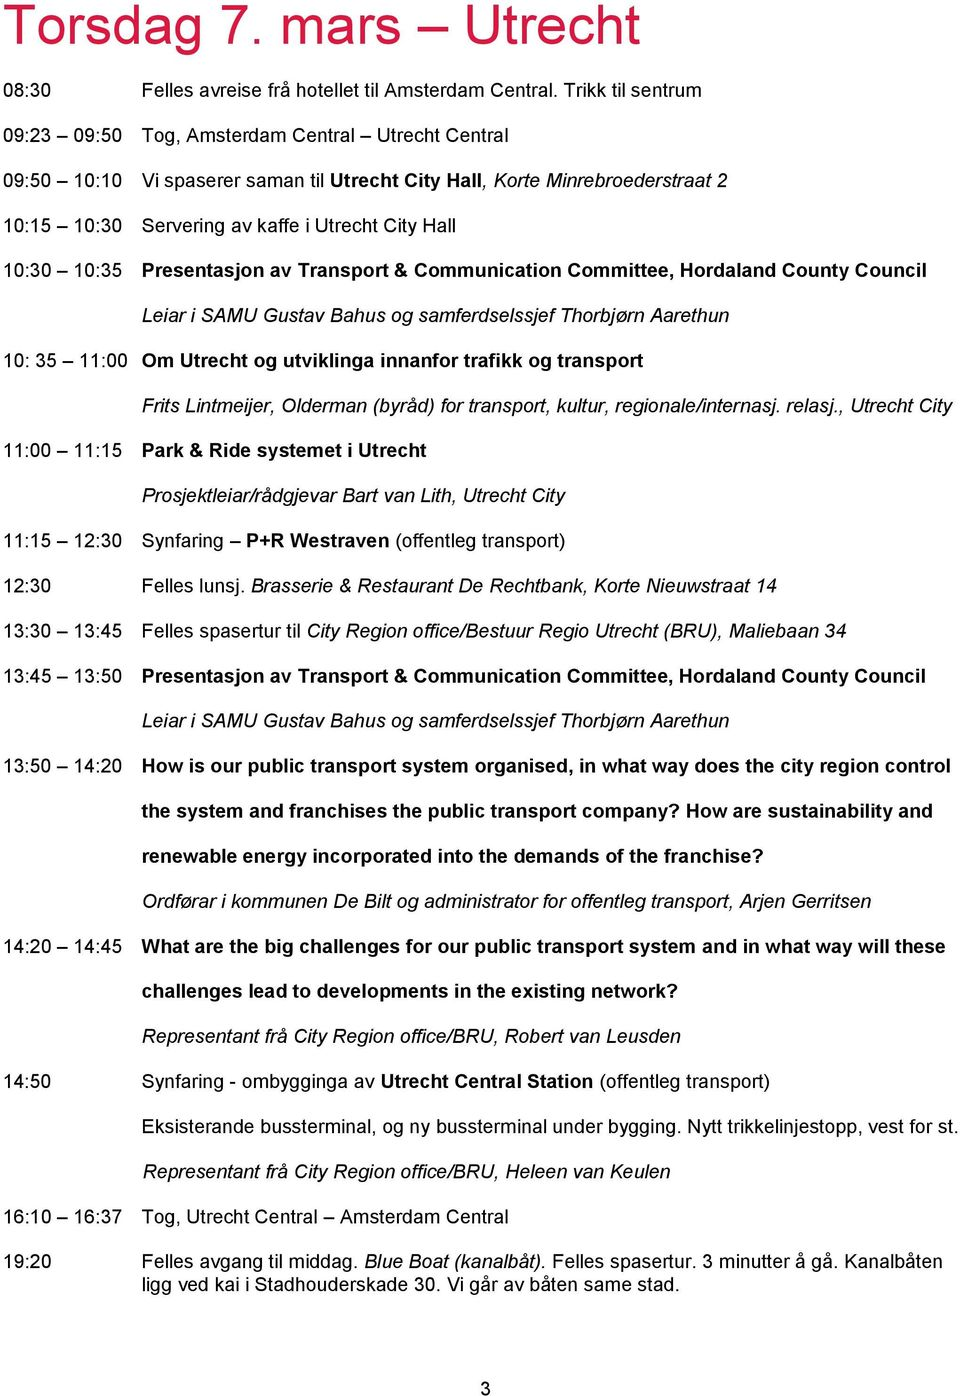 10:30 10:35 Presentasjon av Transport & Communication Committee, Hordaland County Council 10: 35 11:00 Om Utrecht og utviklinga innanfor trafikk og transport Frits Lintmeijer, Olderman (byråd) for